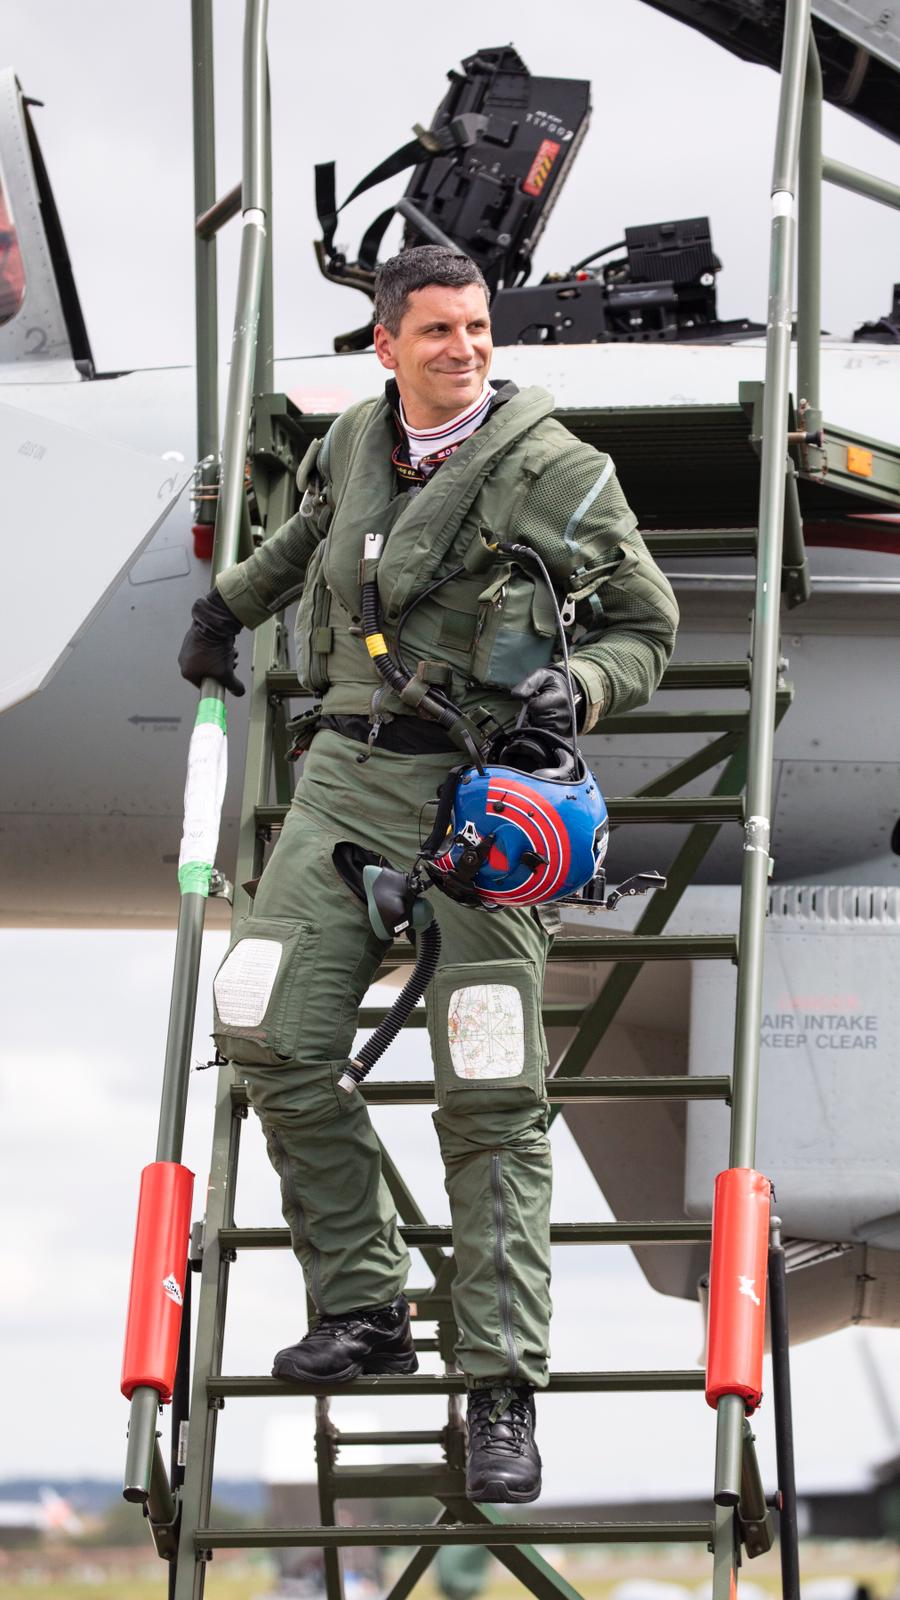 From ATC to MBE – Congratulations Flt Lt Jim P